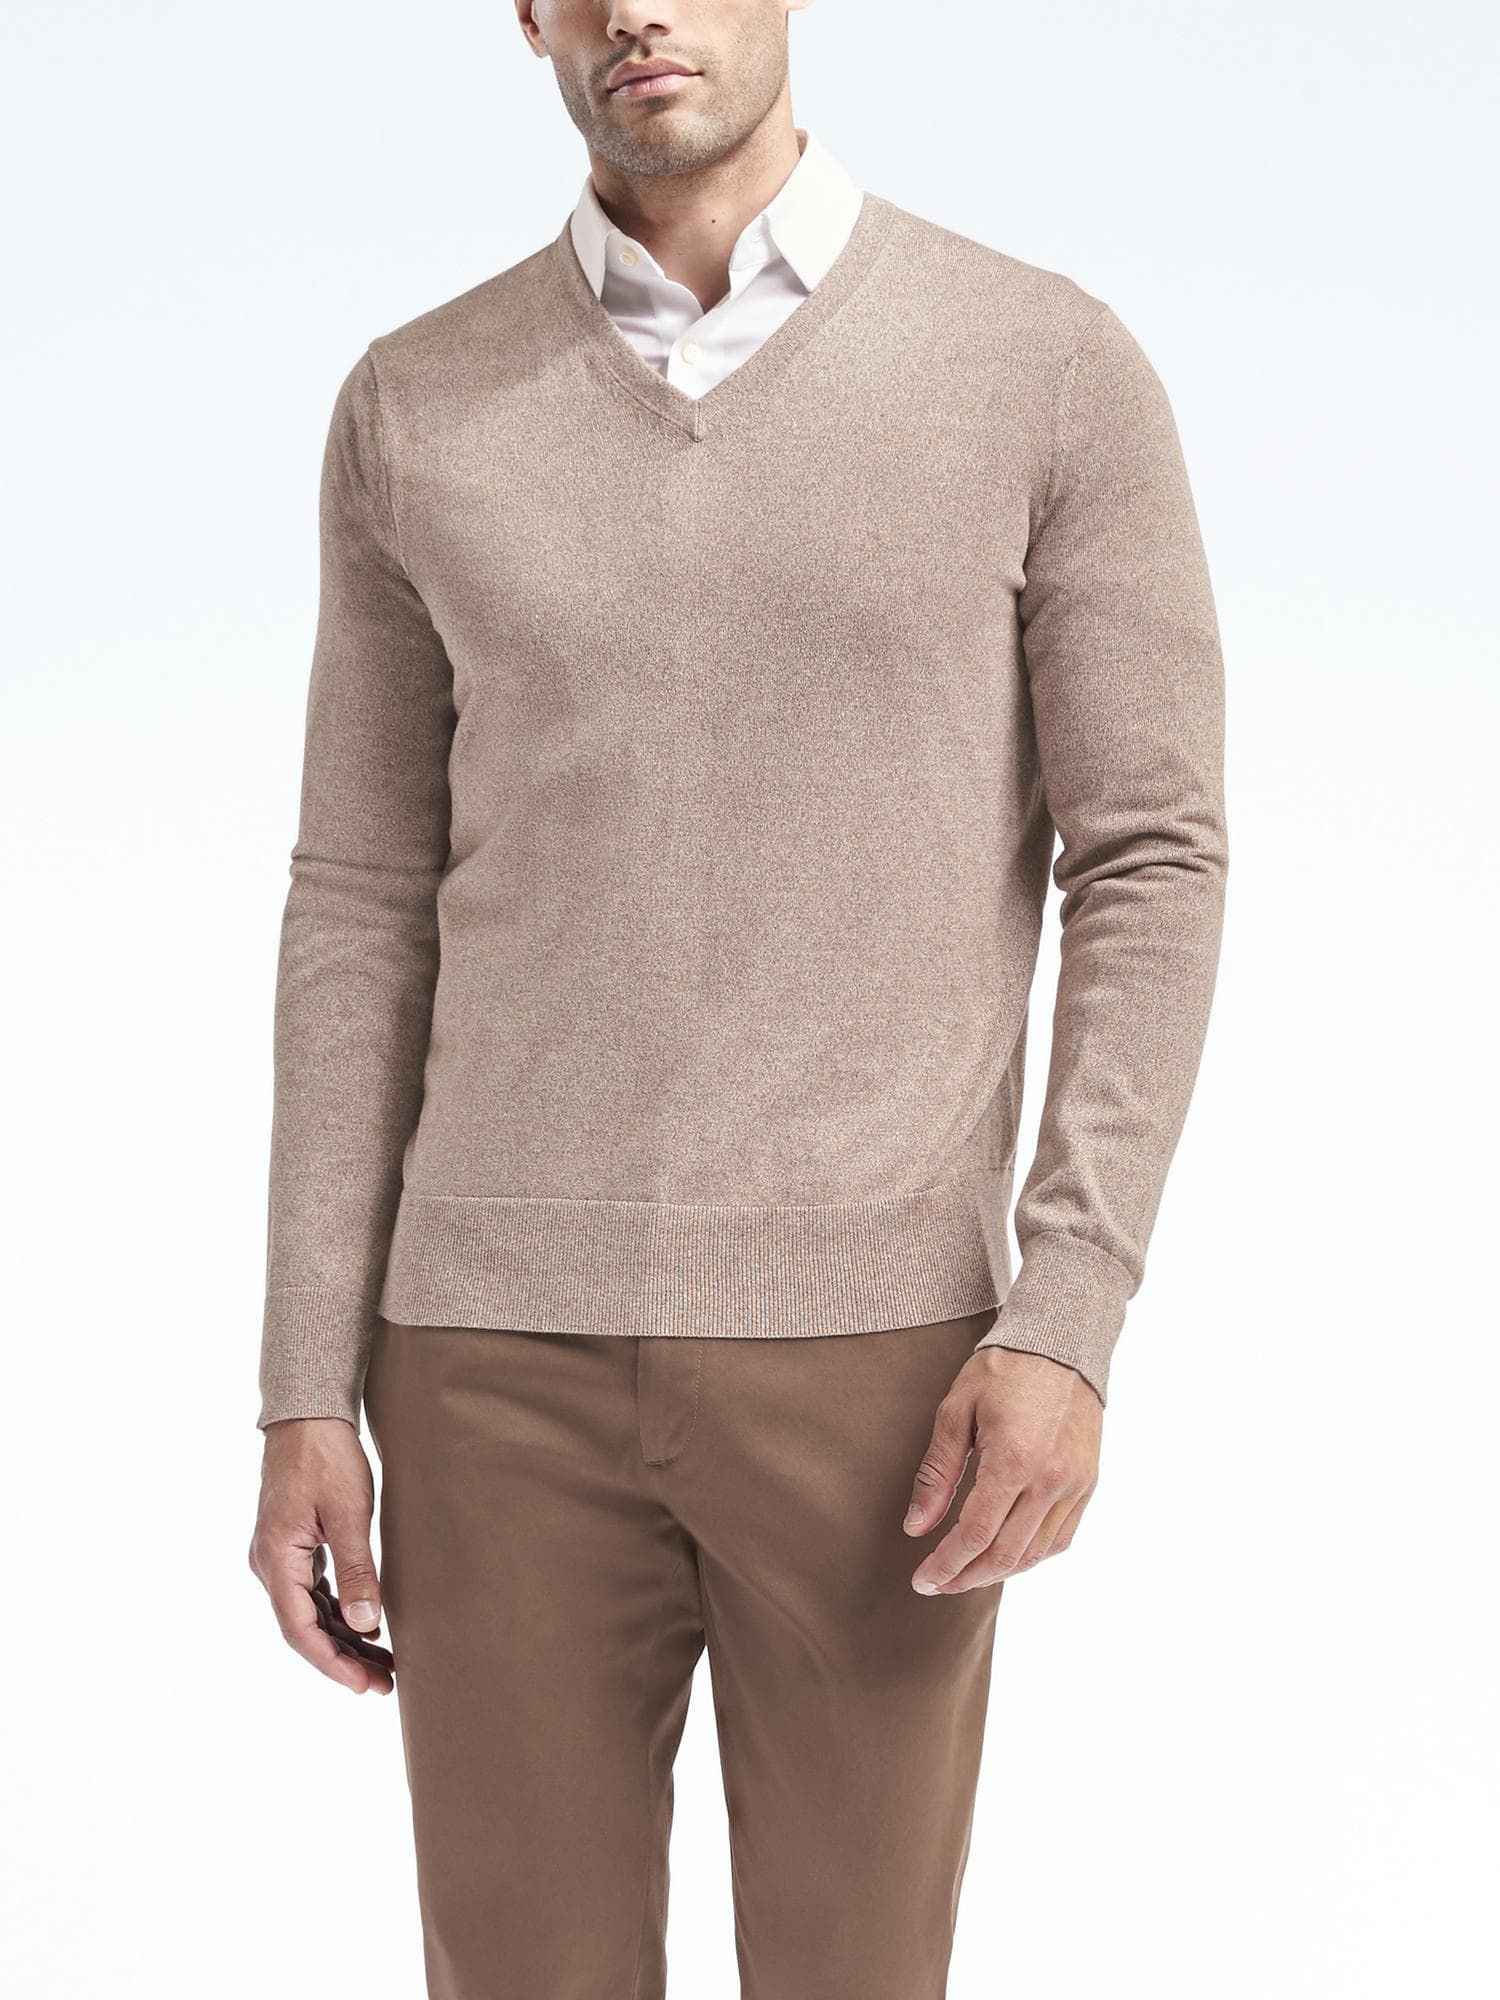 Silk Cotton Cashmere V Neck Sweater Banana Republic In 2020 Sweater Outfits Men Mens Outfits Men Sweater [ 2000 x 1500 Pixel ]